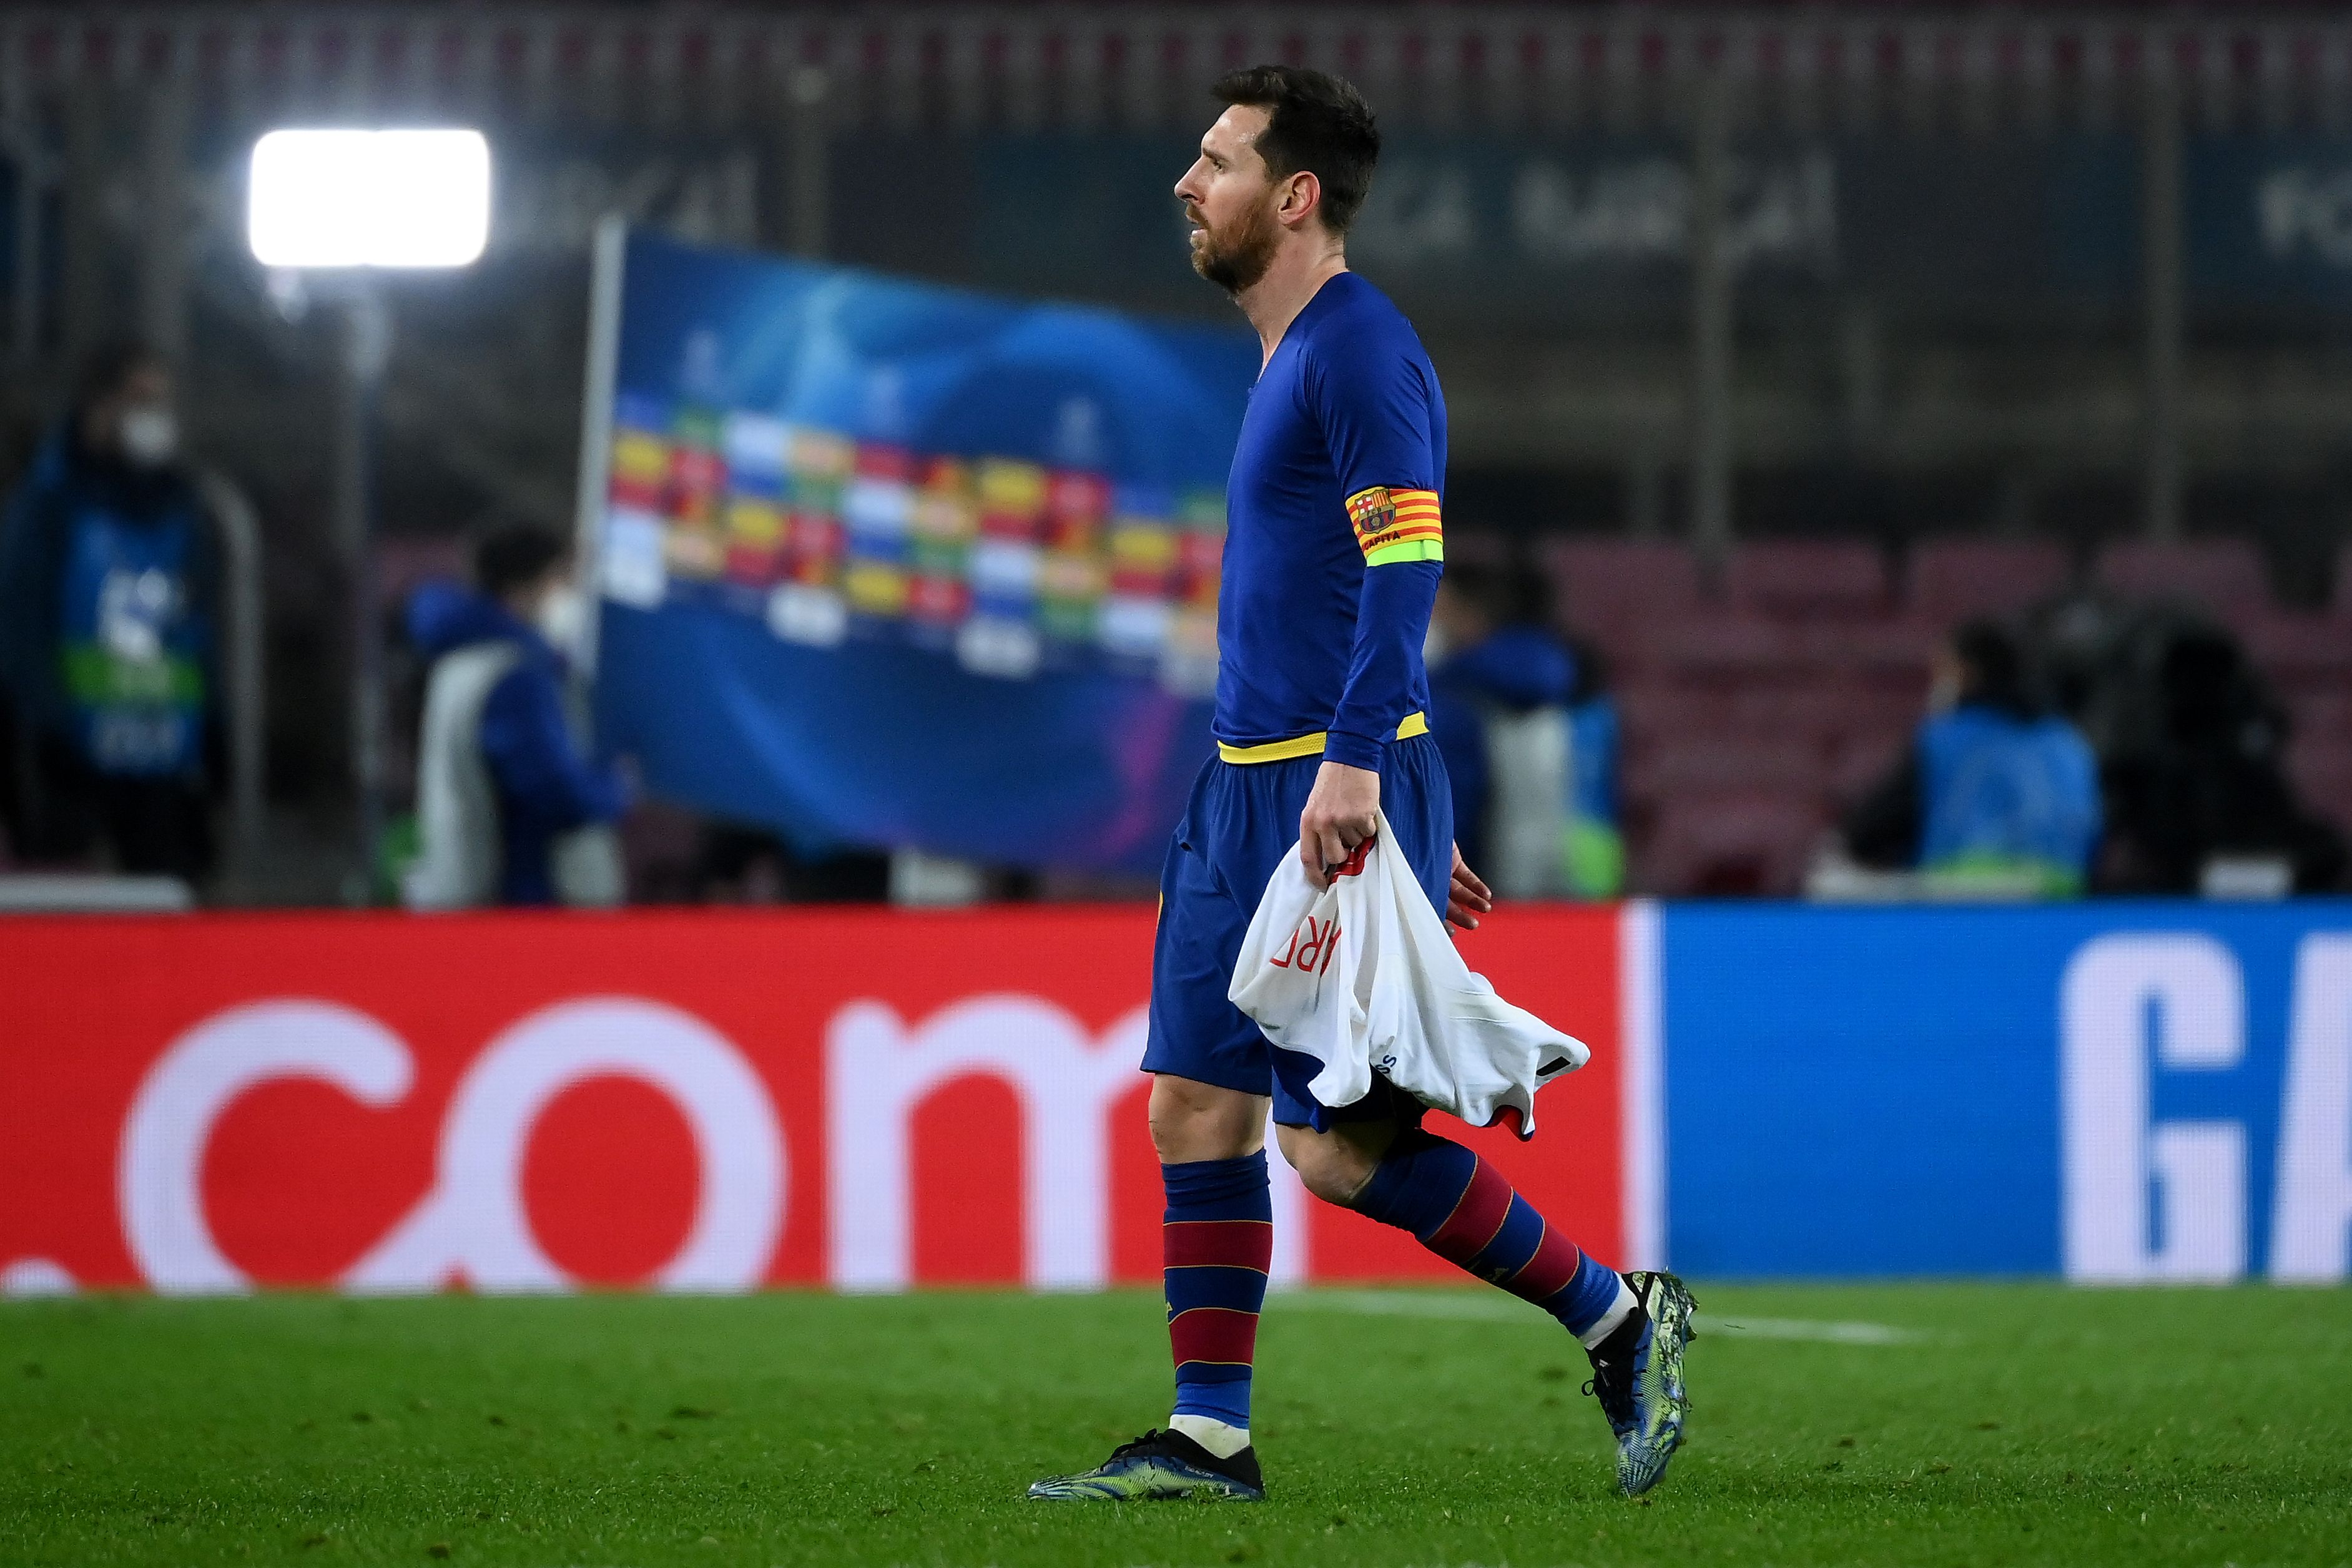 PSG Mercato: Spanish Football Program Reports That Barça's Lionel Messi Is  Looking for a House in Paris - PSG Talk